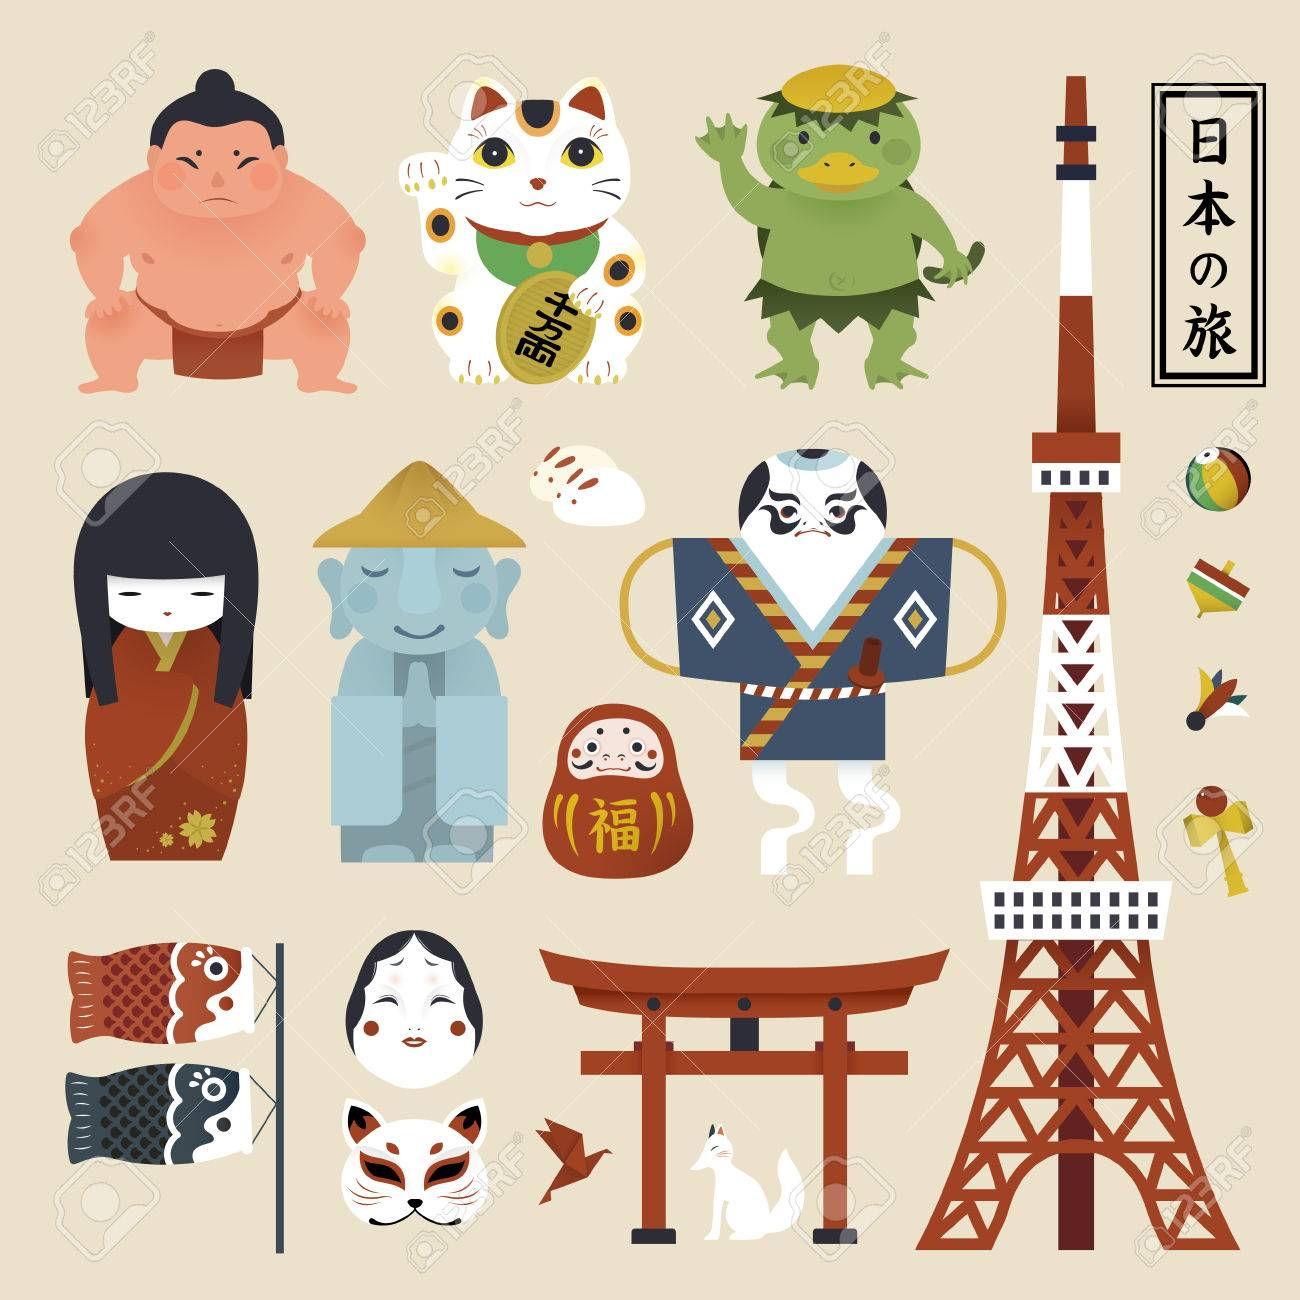 Japanese Culture Symbols 19419 Enews